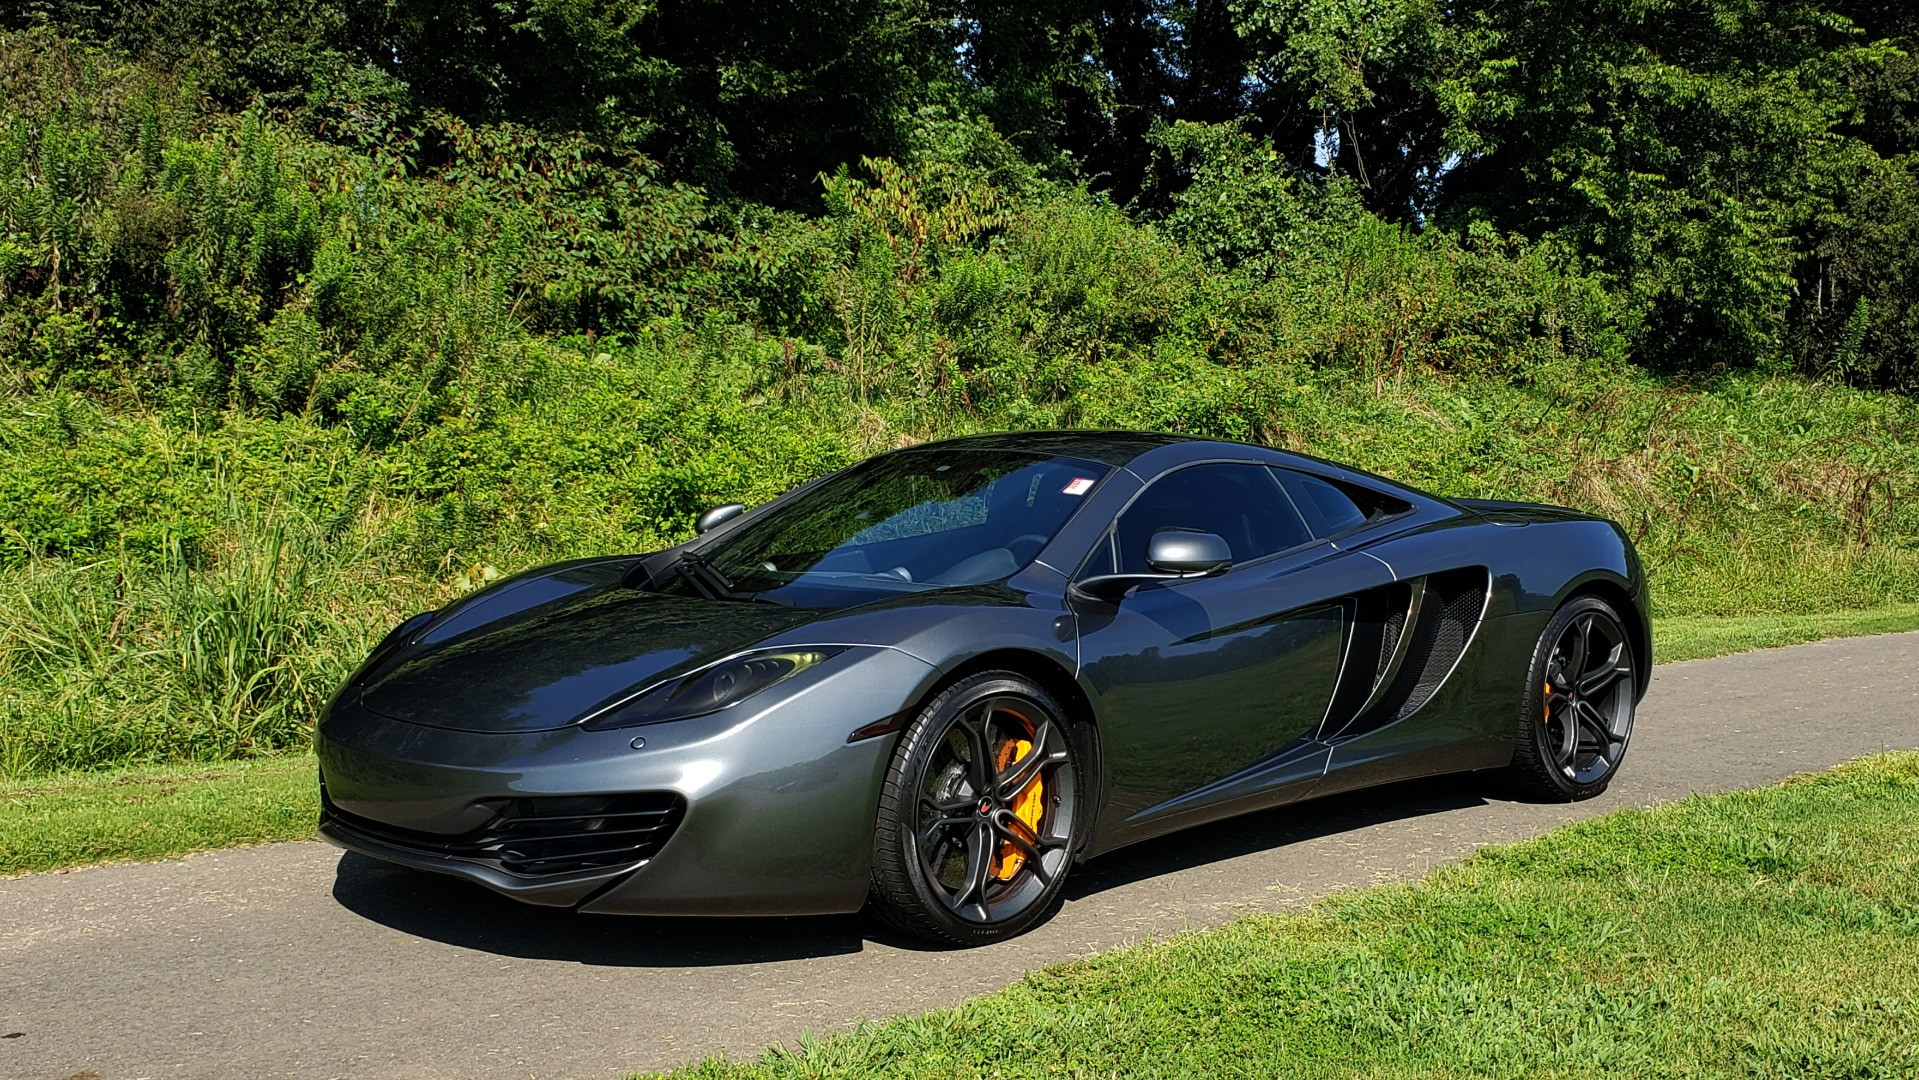 Used 2012 McLaren MP4-12C COUPE / 3.8 L V8 592HP / AUTO / NAV / CCB / LOW MILES for sale Sold at Formula Imports in Charlotte NC 28227 11